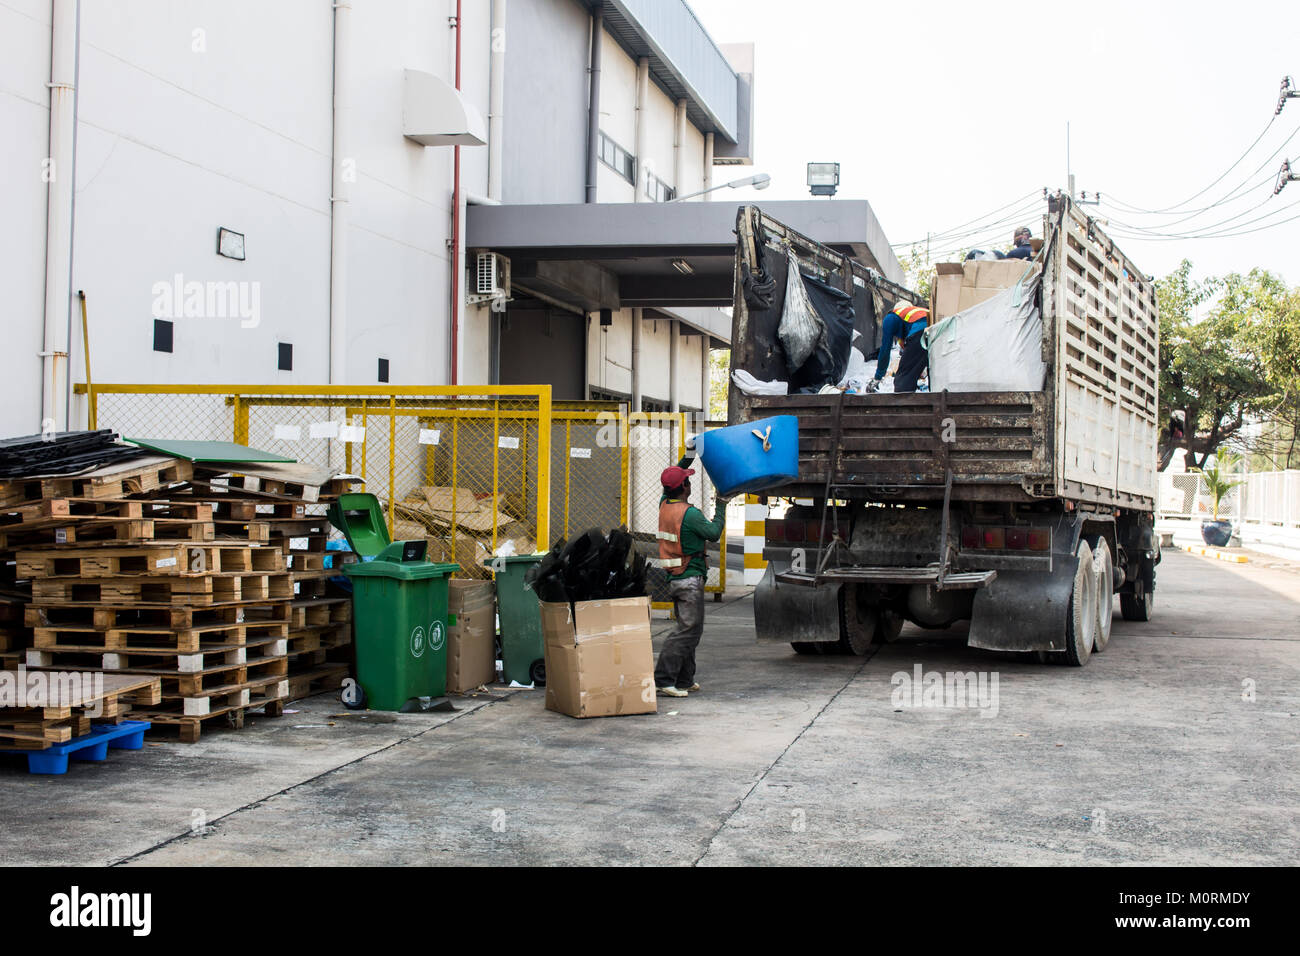 Waste Management, The garbage truck with worker - Stock Image